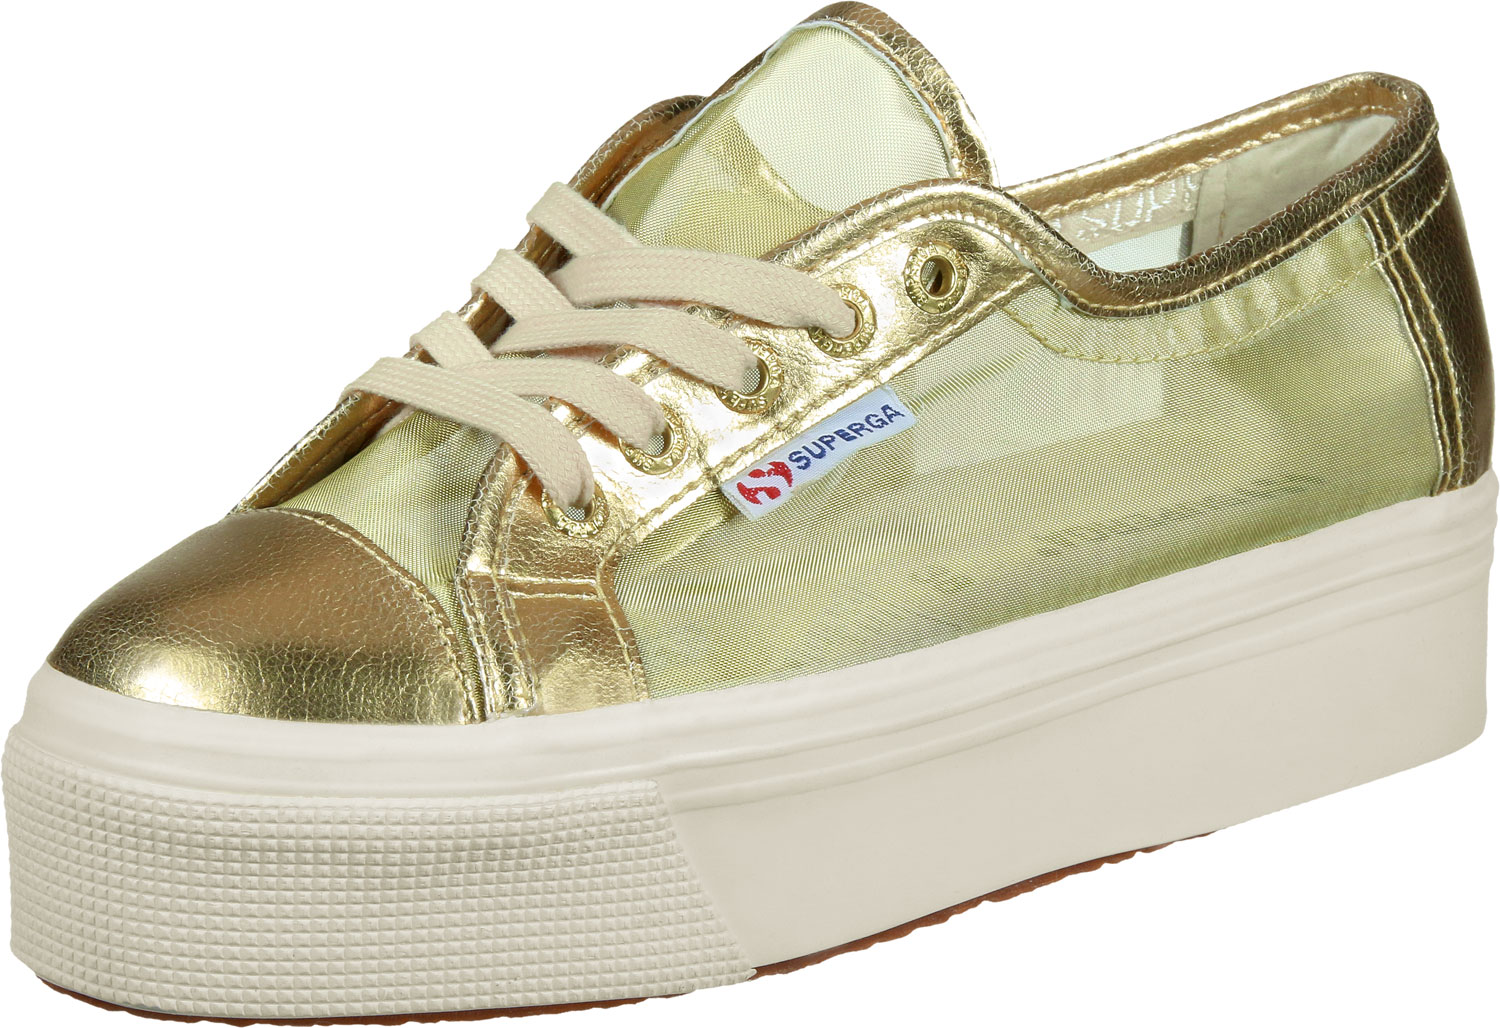 Superga 2790 Netw W - Sneakers Low at